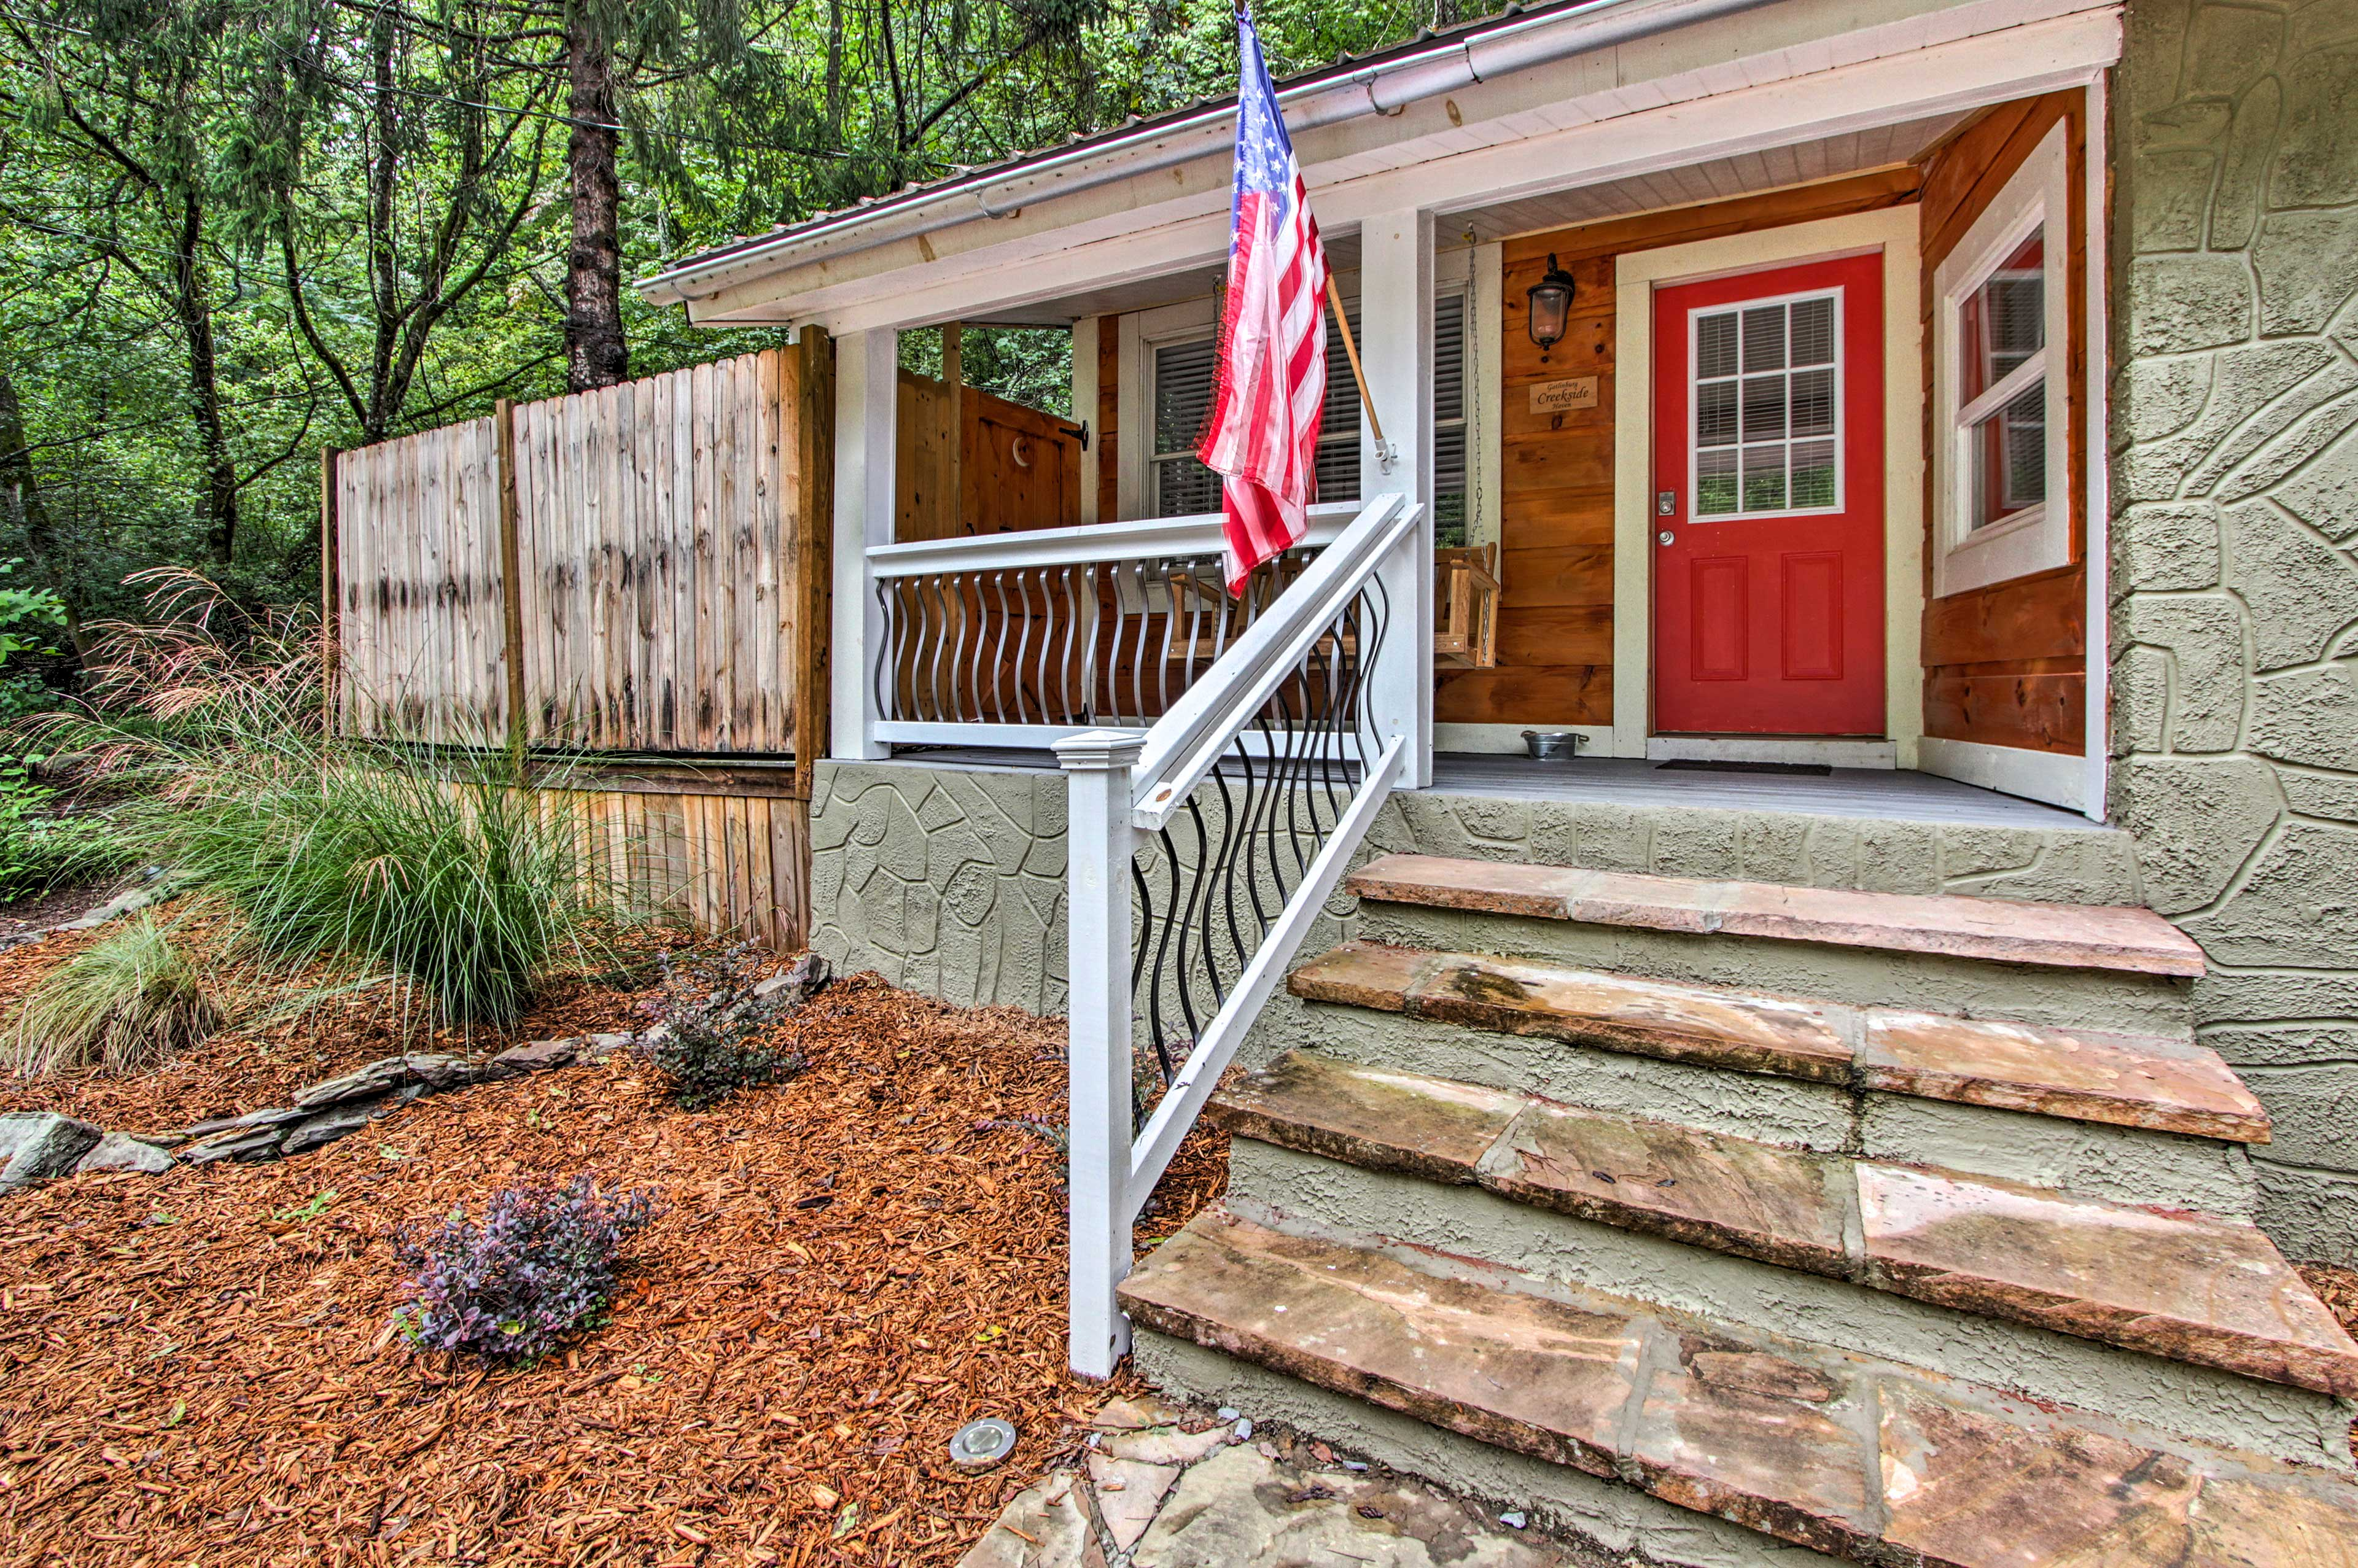 Newly remodeled, the cabin is both modern and rustic.